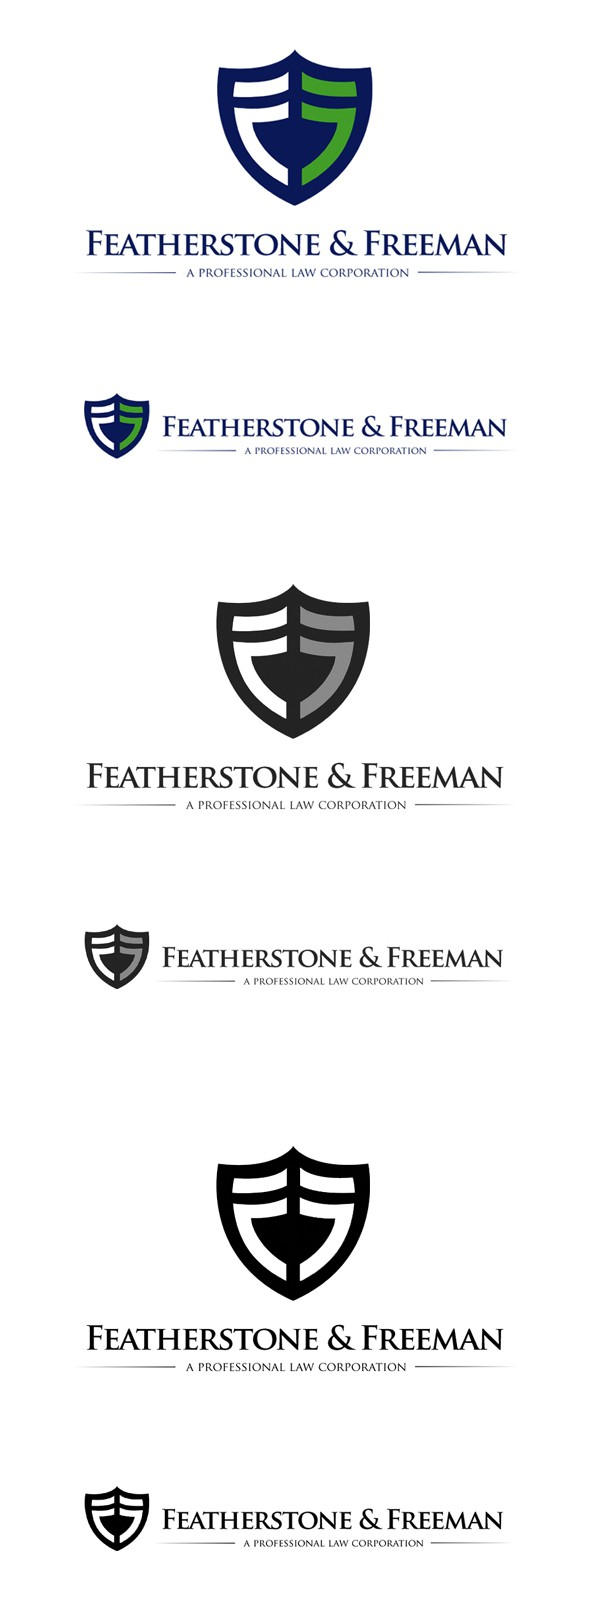 New logo wanted for Featherstone & Freeman